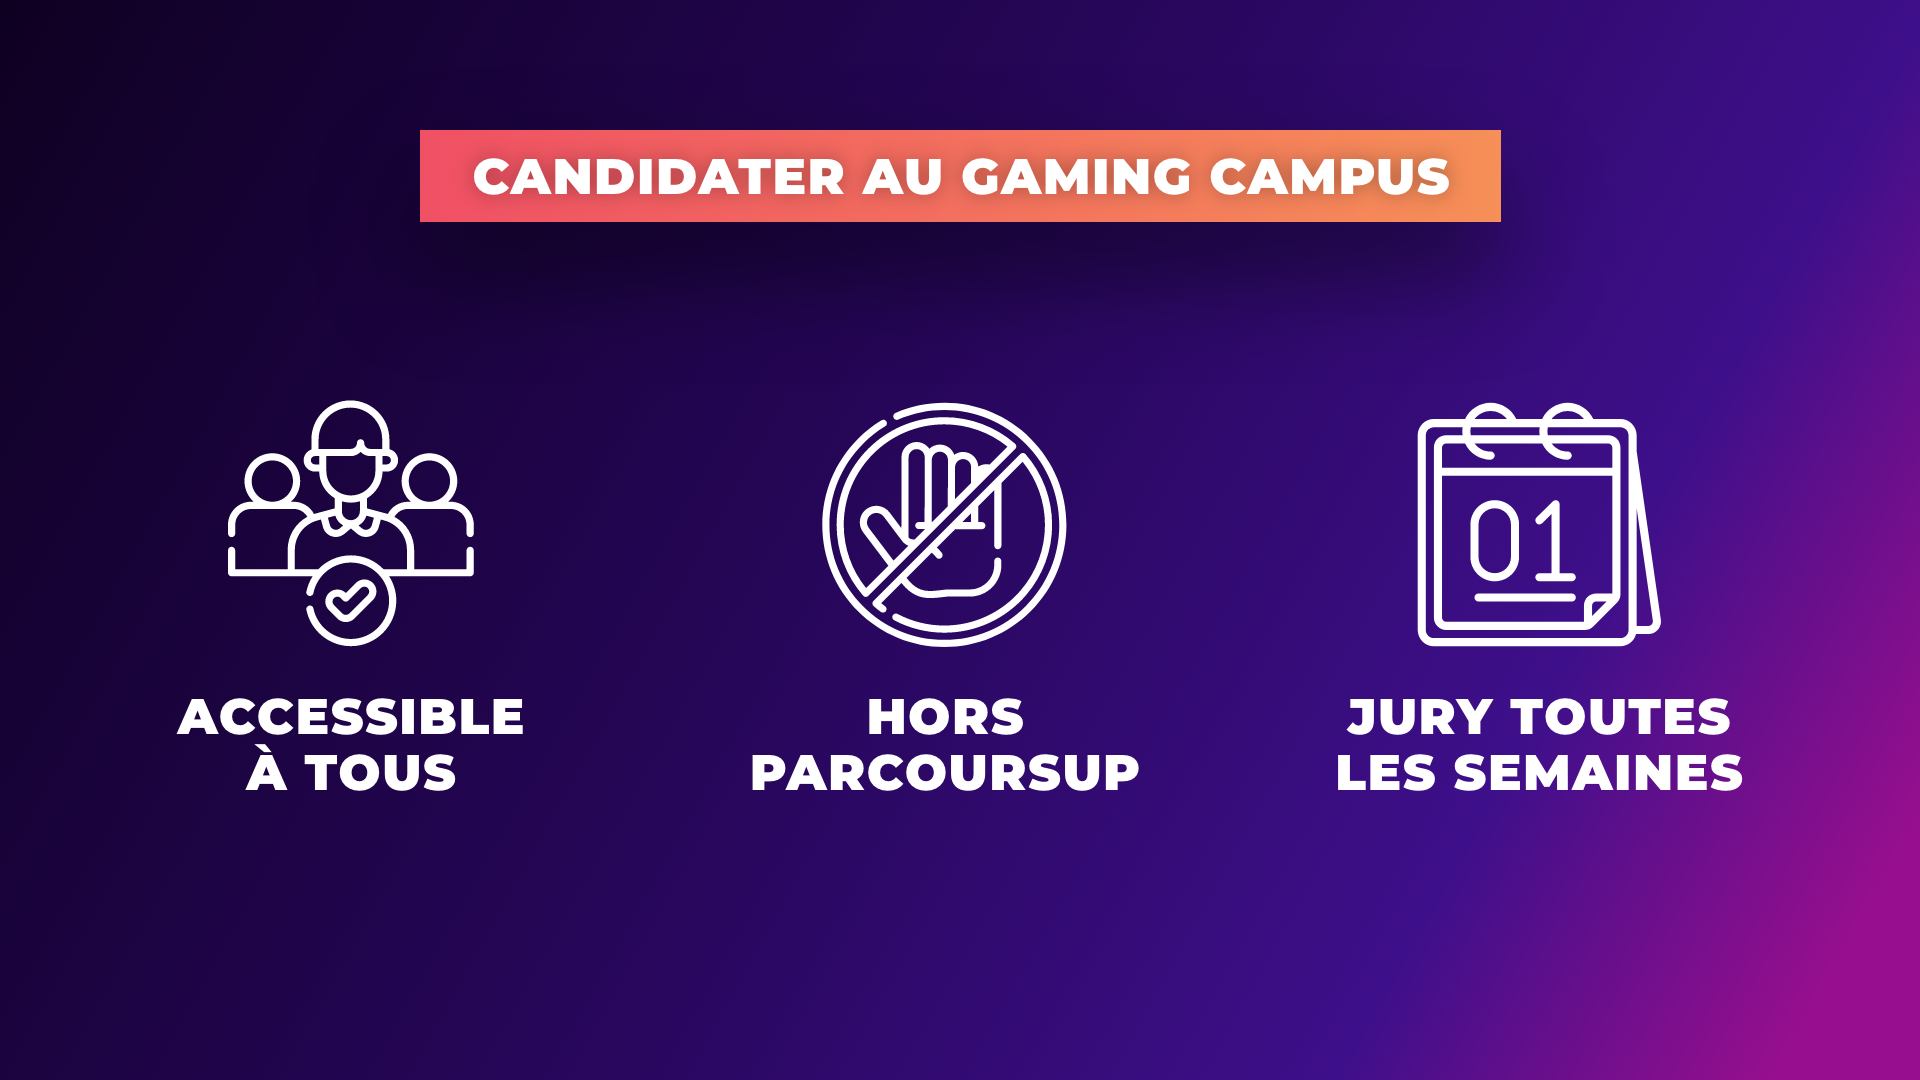 Candidatures-hors-parcoursup-gamingcampus.fr